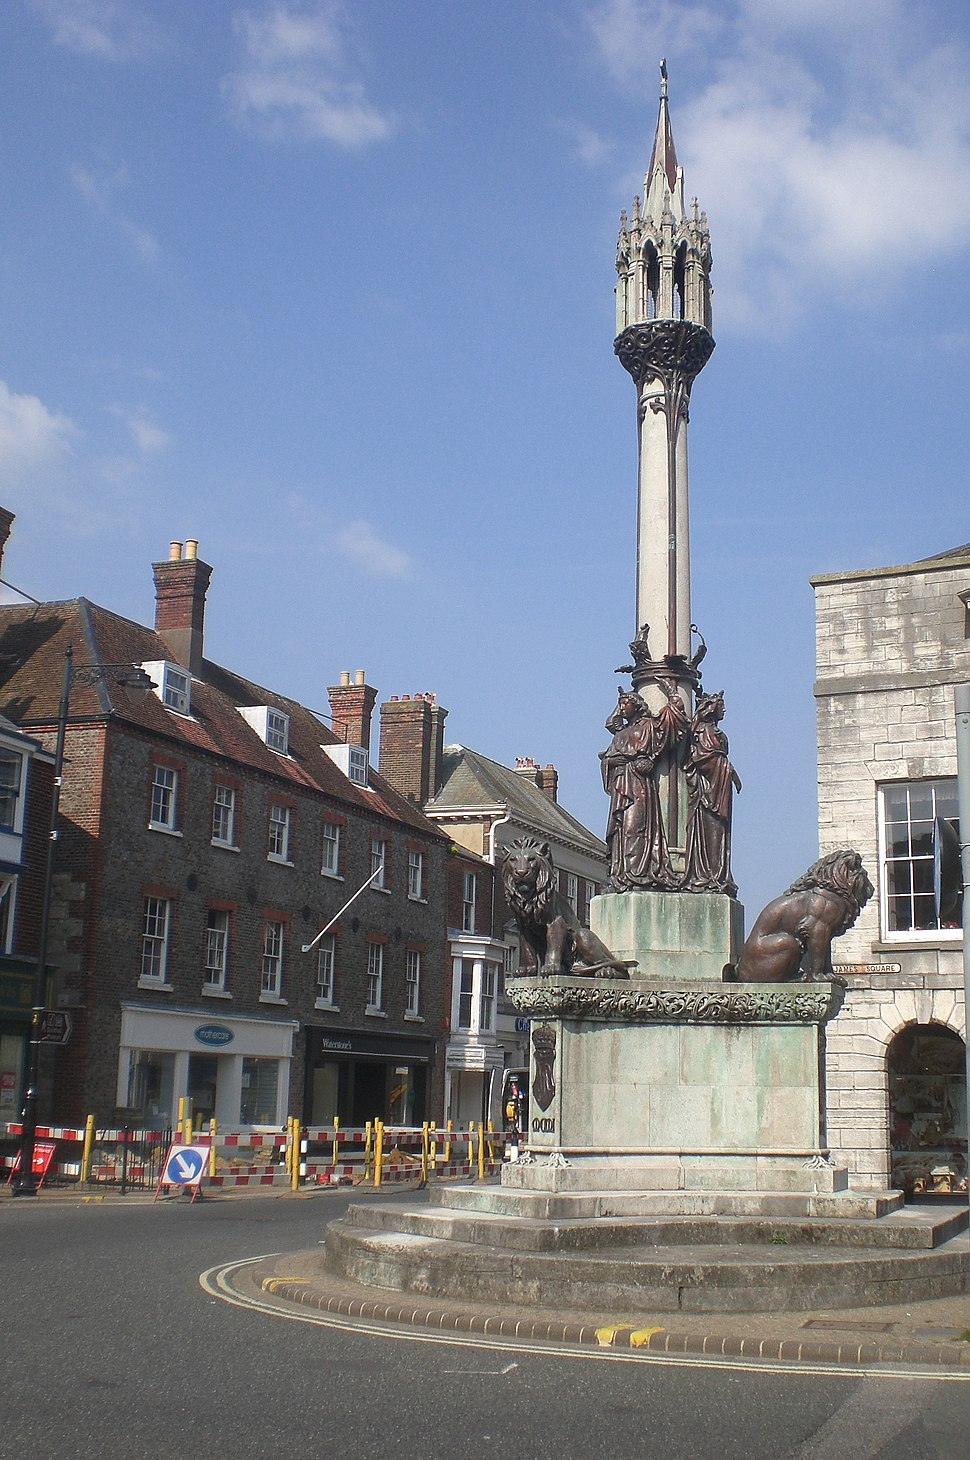 Statue at St James' Square in Newport